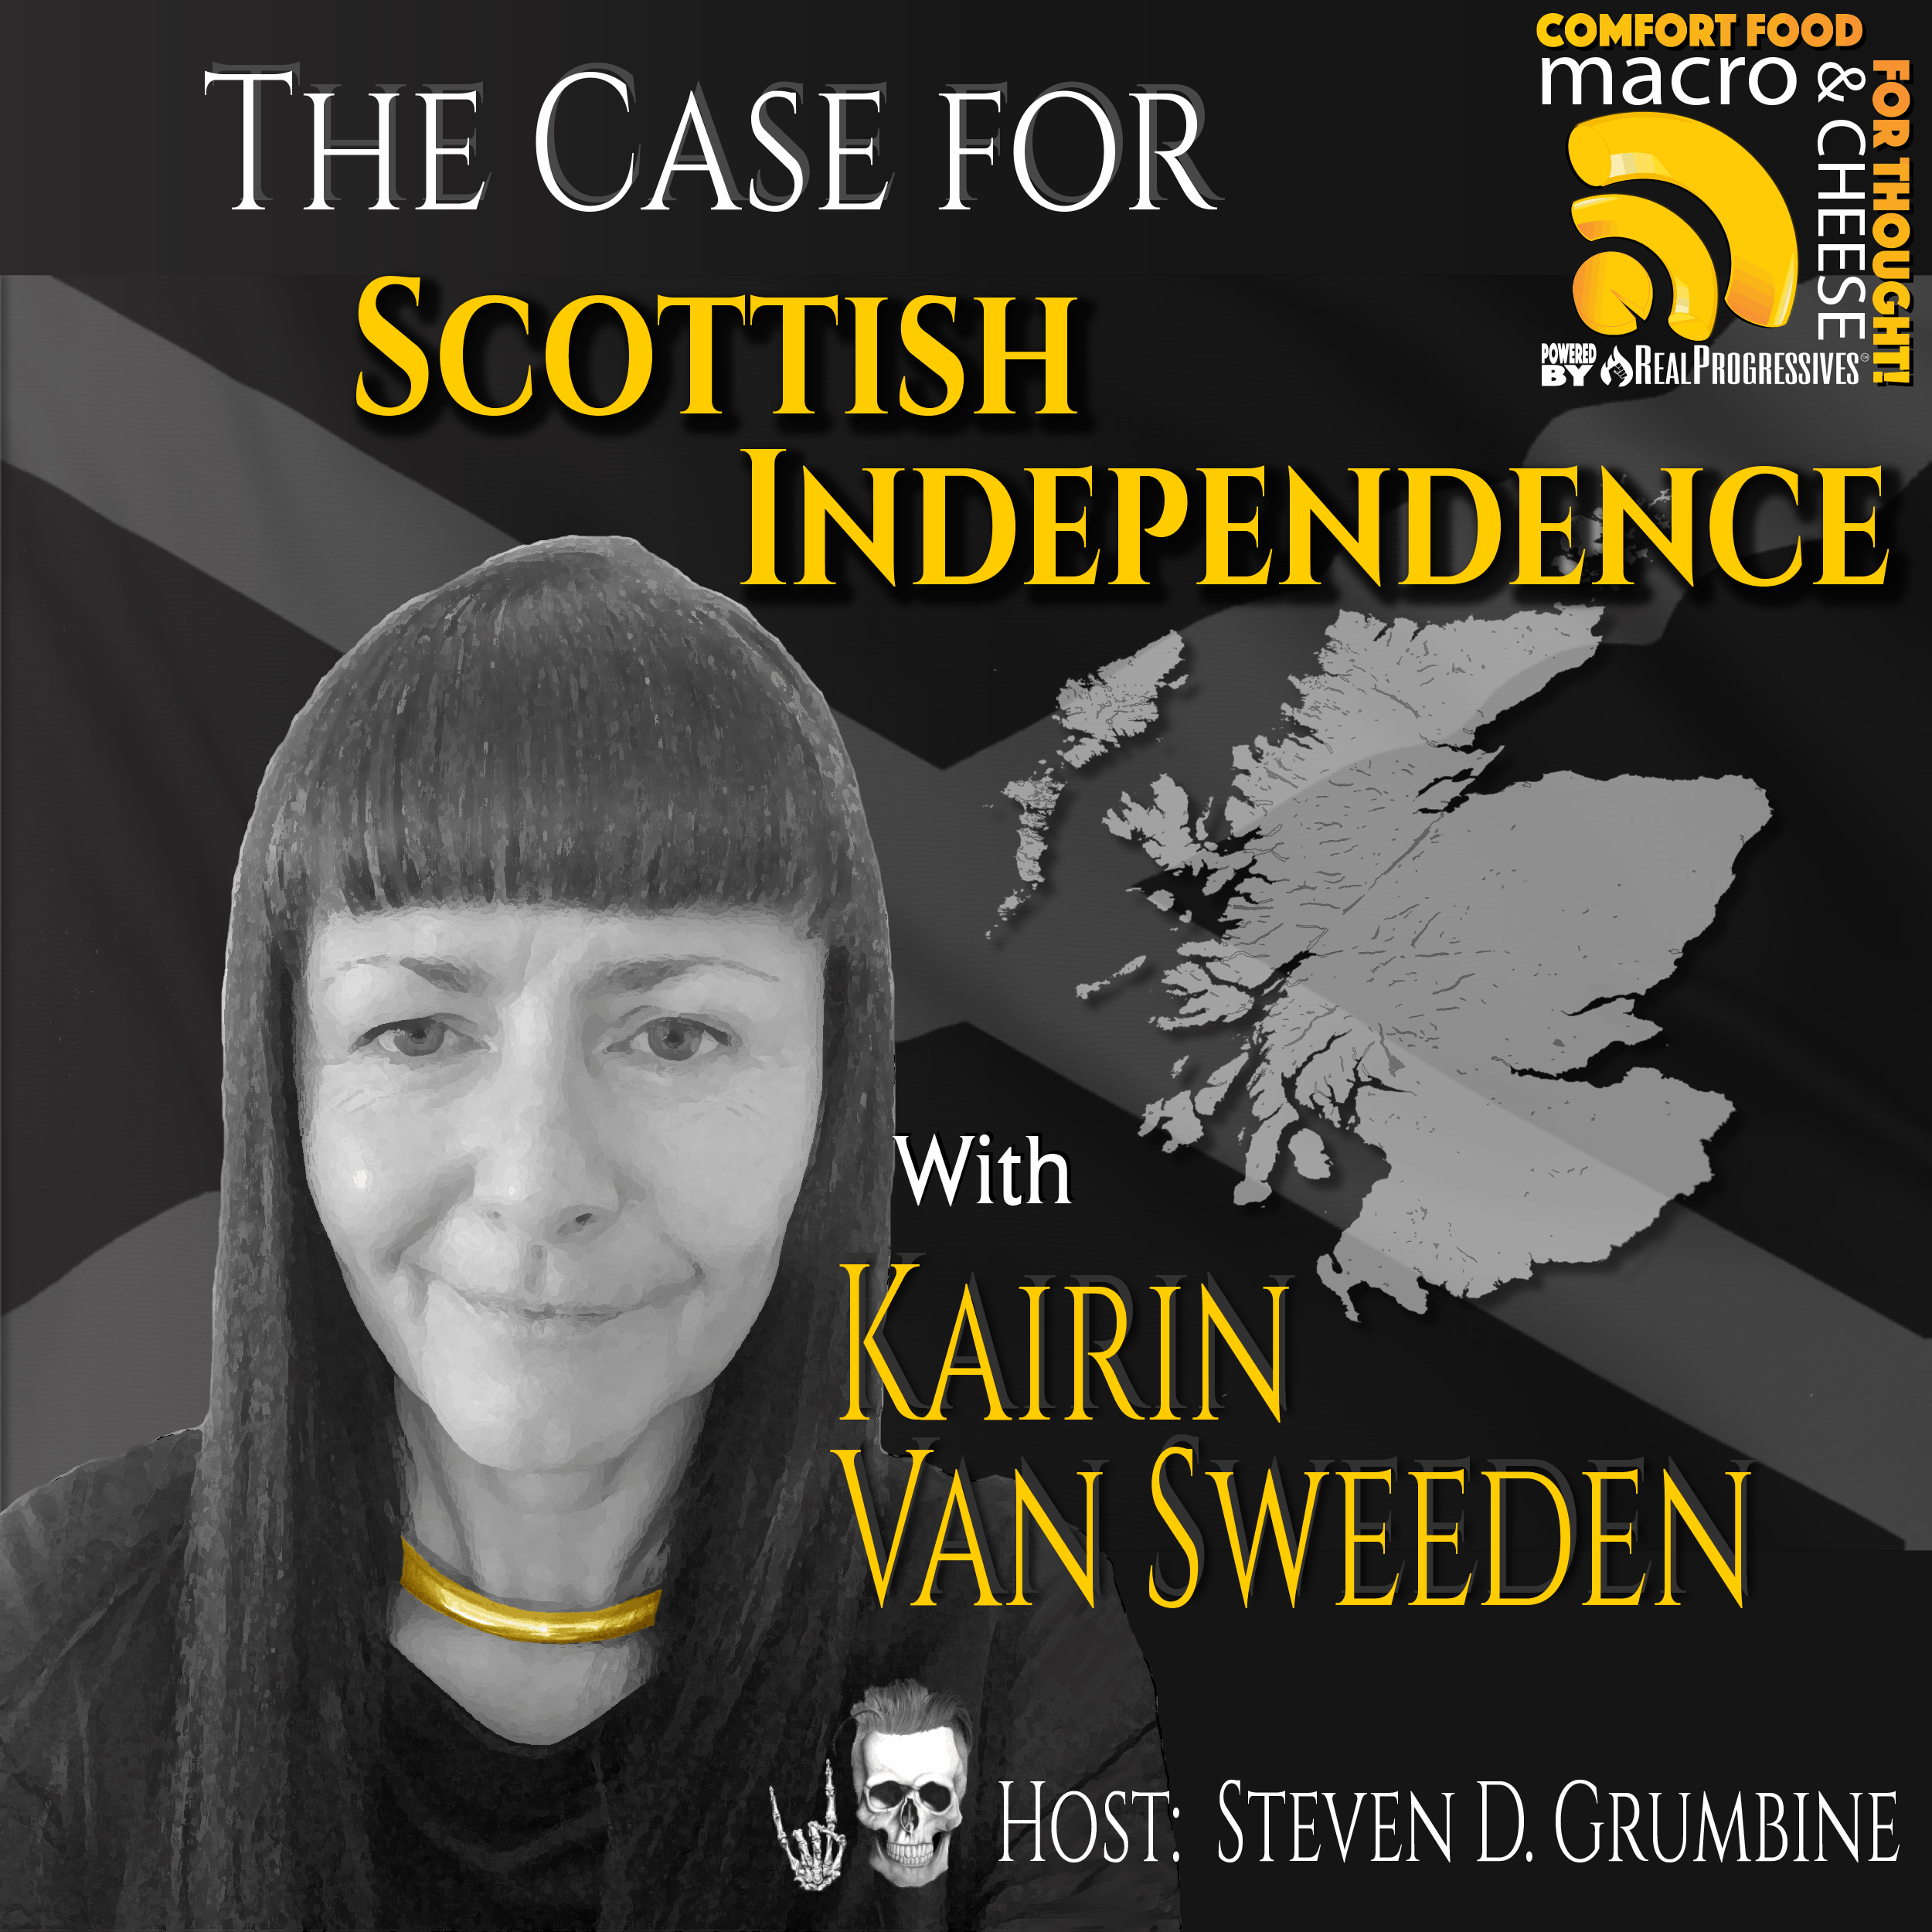 Episode 105 - The Case for Scottish Independence with Kairin Van Sweeden